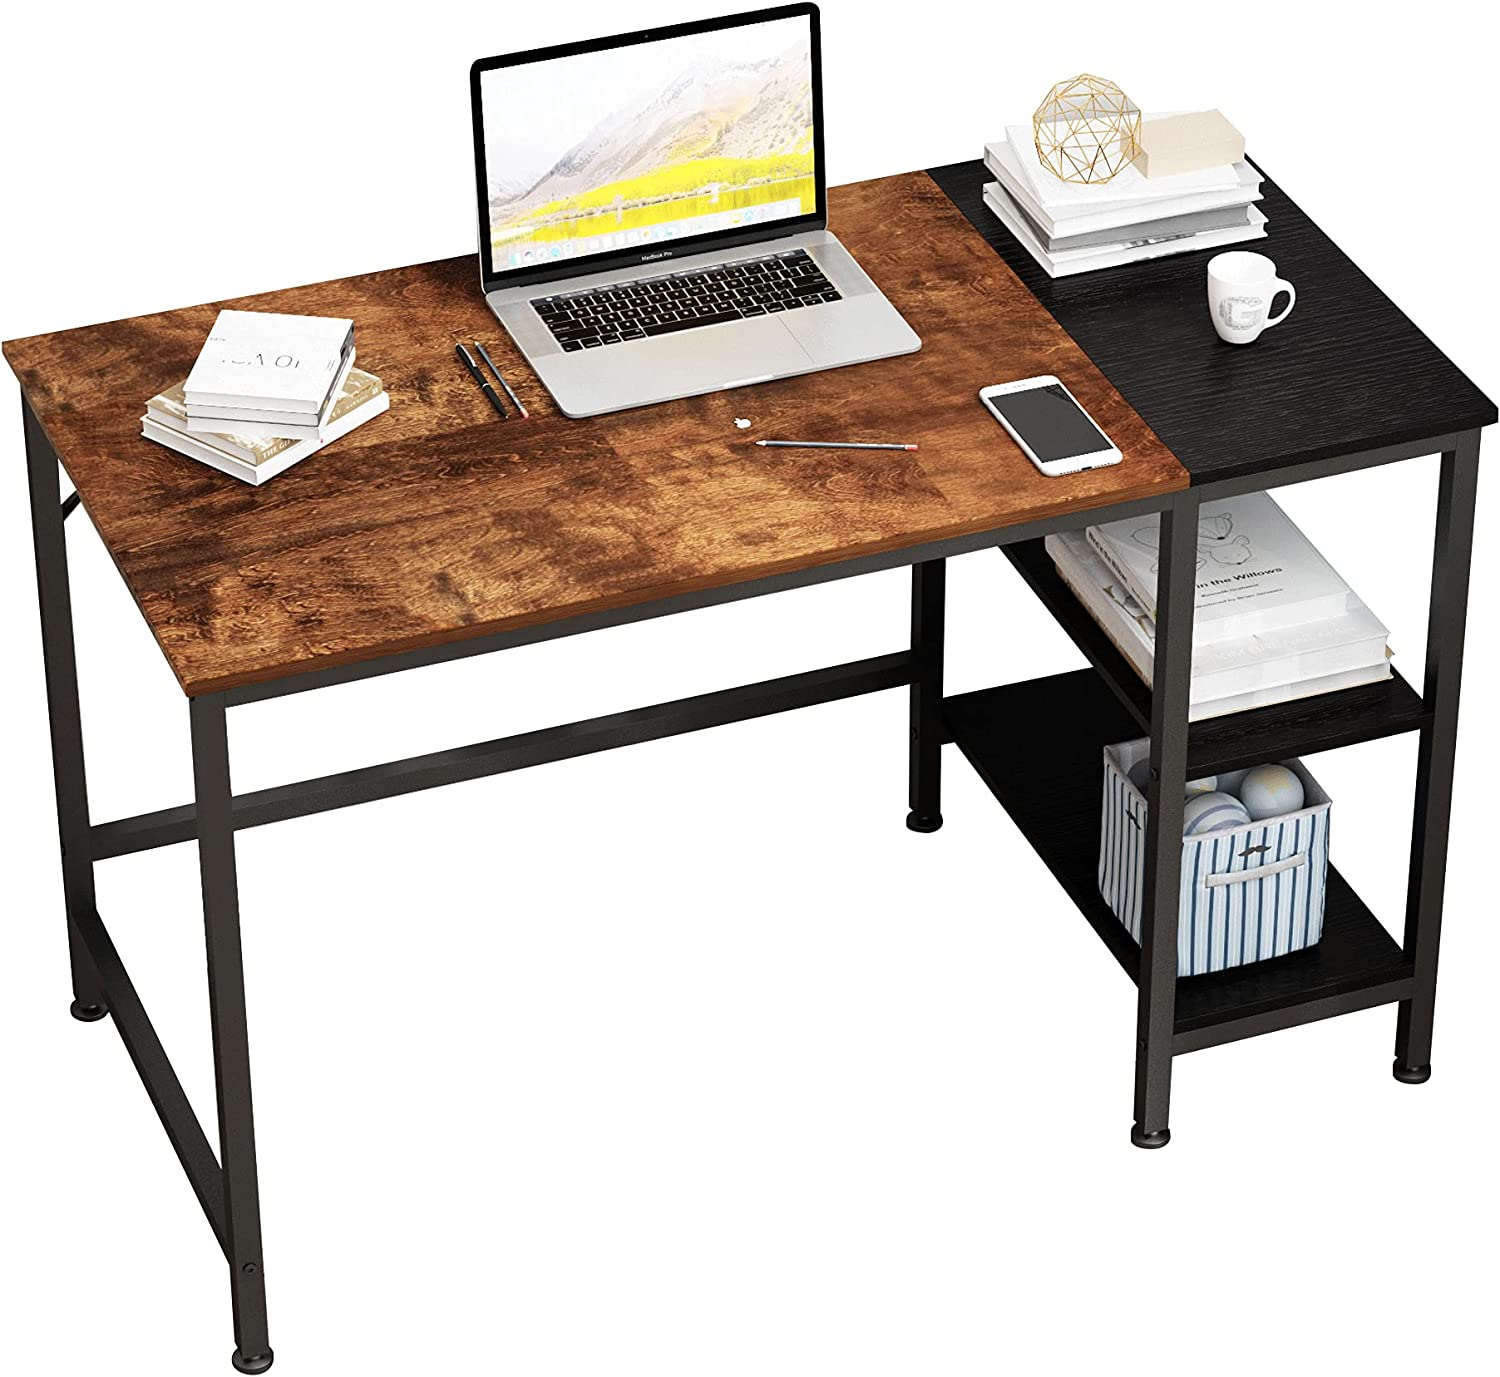 MEGAFUTURE Computer Desk Two-Layer Direct stock discount Wooden Bookshelf Study Table Max 76% OFF